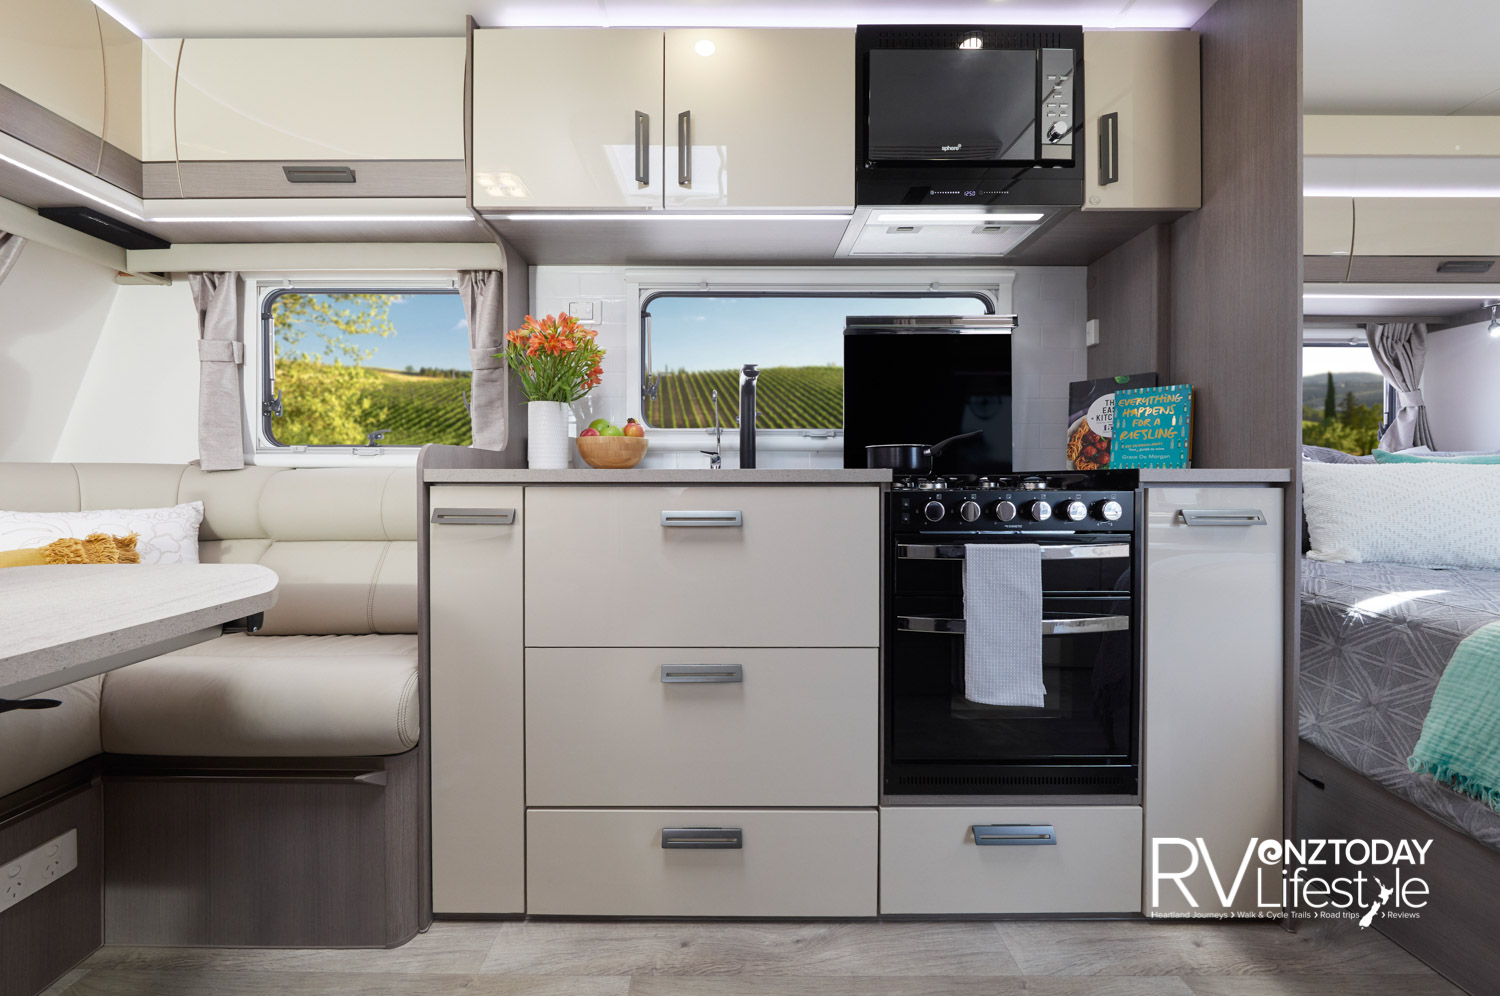 Upon entry you have the kitchen unit opposite, cupboards and microwave above, drawers and pull-out pantries below, full separate oven/grill oven with four-burner gas hob. Nice backsplash, big window and rangehood